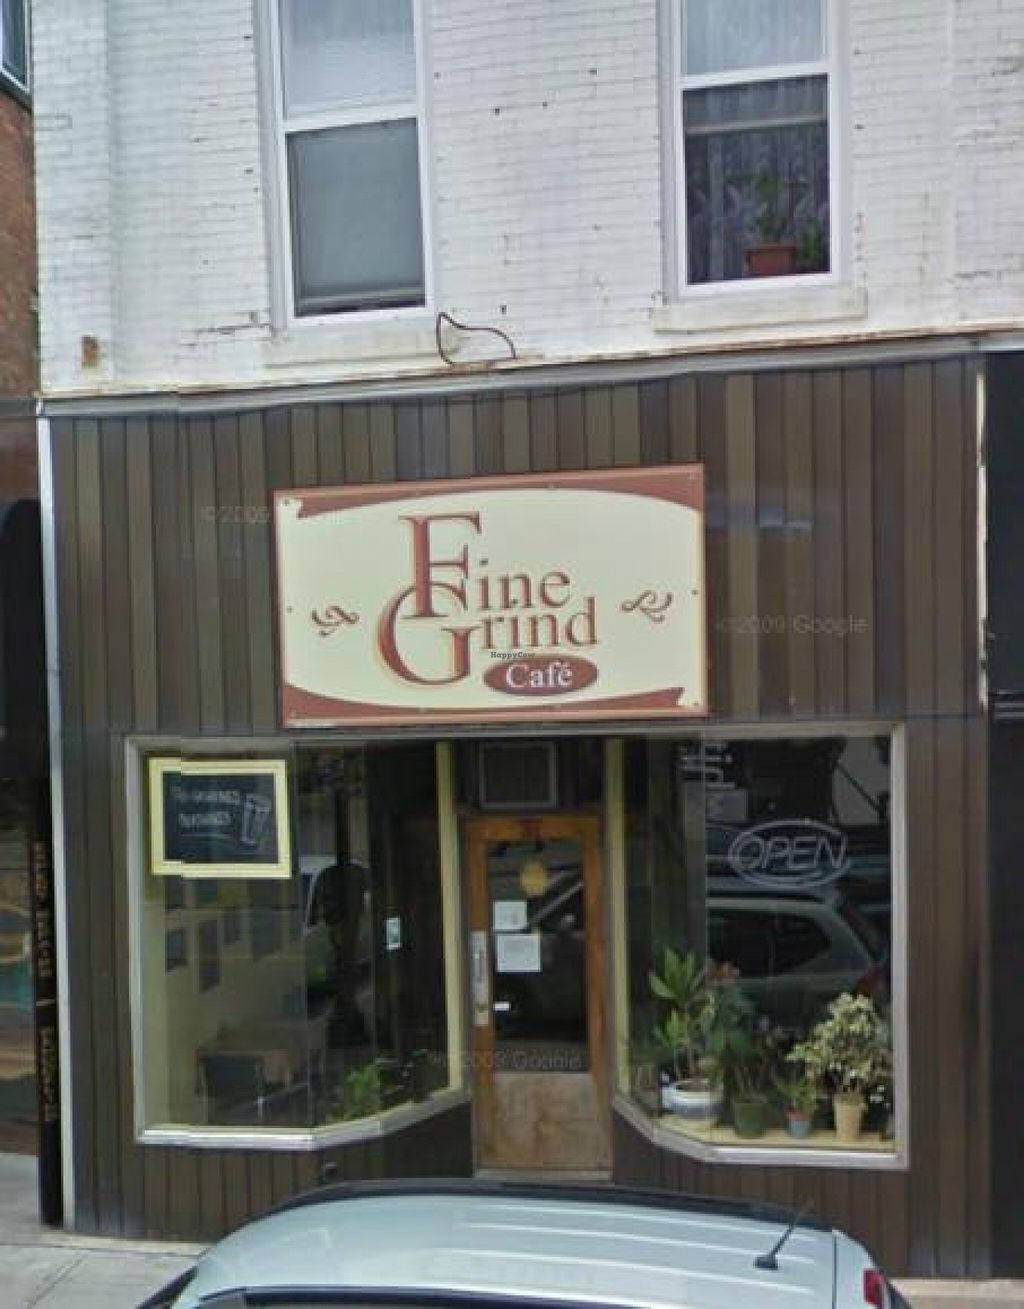 """Photo of Fine Grind Cafe  by <a href=""""/members/profile/community"""">community</a> <br/> Fine Grind Cafe <br/> October 28, 2015  - <a href='/contact/abuse/image/64657/123048'>Report</a>"""